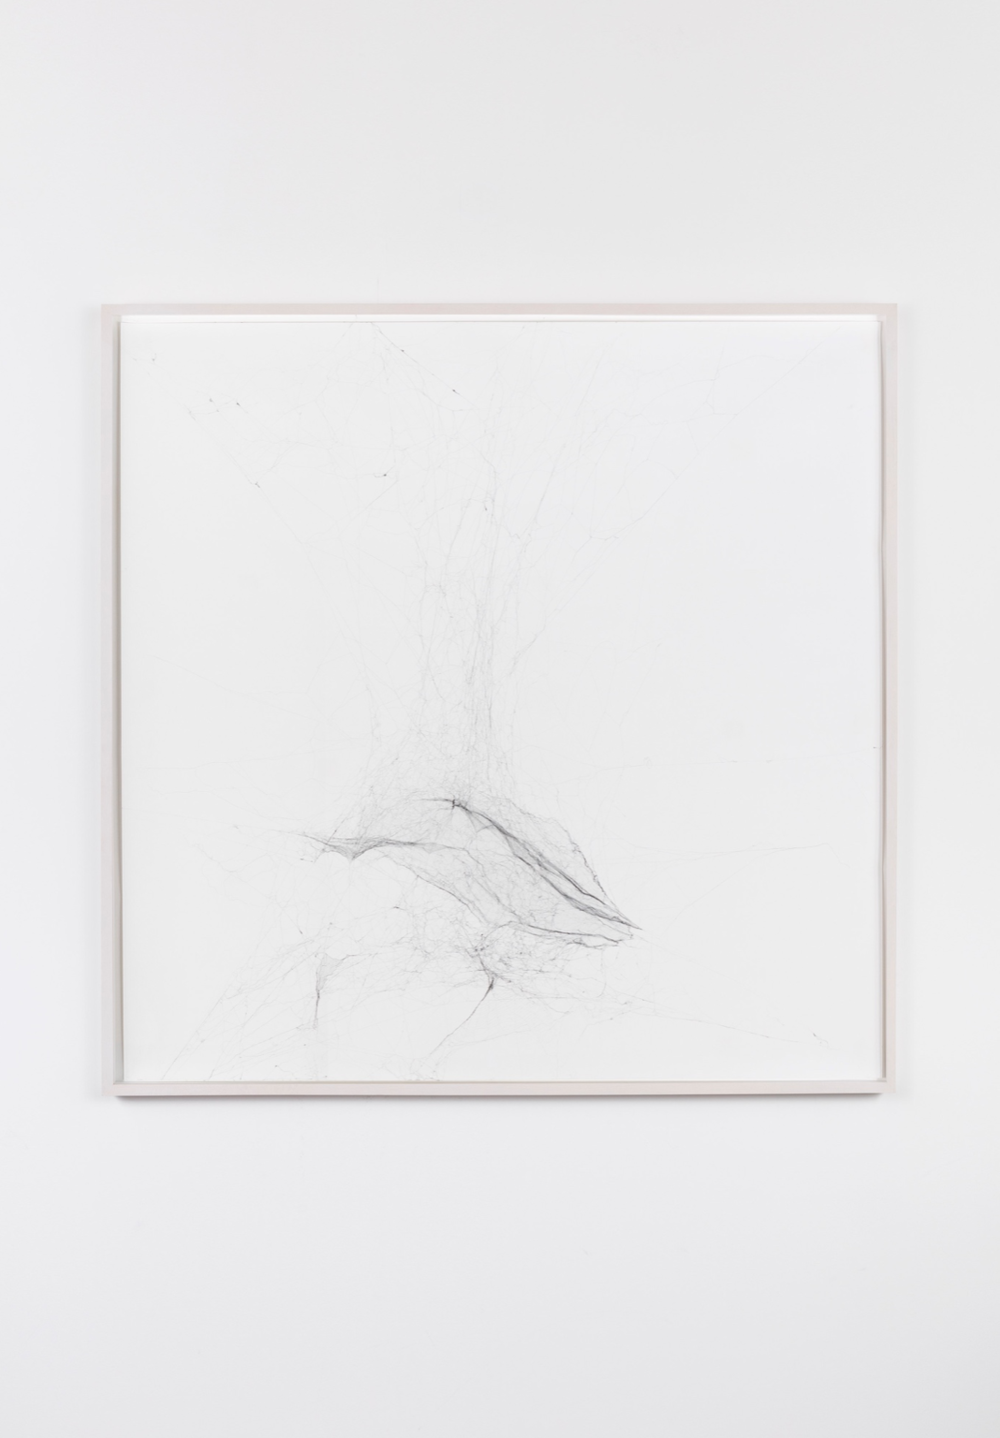 Tomás Saraceno Solitary Semi-Social Mapping Of SDSS J1030+0524 By A Solo Nephila Senegalensis - One WeekAnd A Solo Cyrtophora Citricola - Three Weeks, 2015 Spidersilk, paper, ink glue, gloss 92,5 x 92,5 x 5 cm (framed)